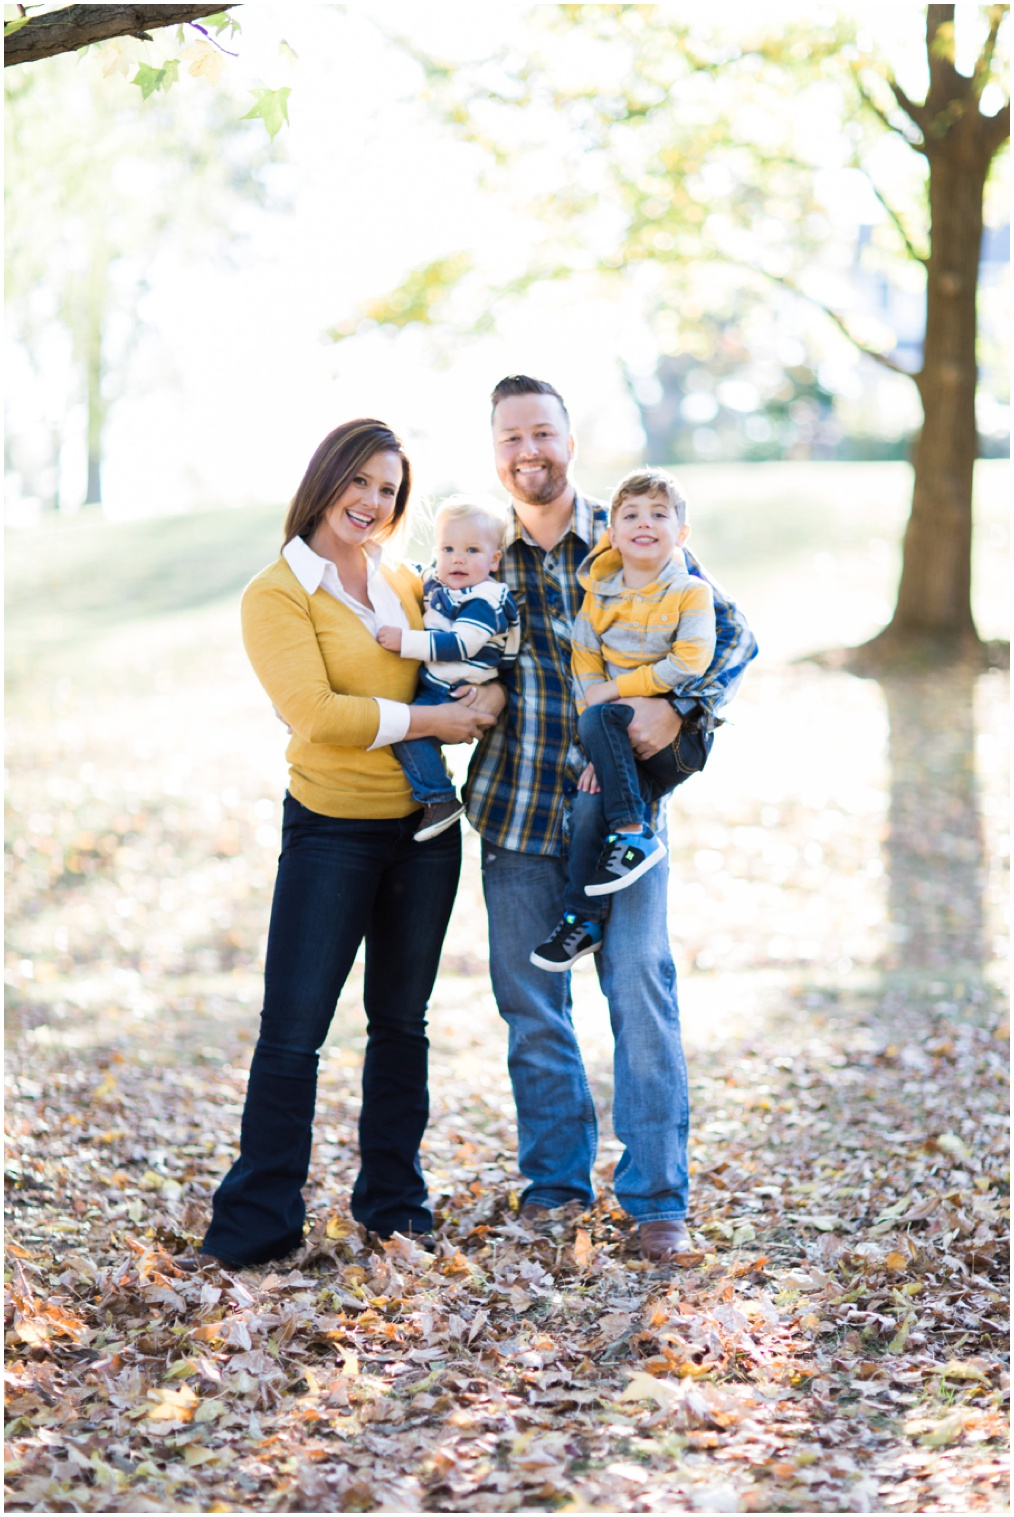 photography-family-st-louis-4.jpg